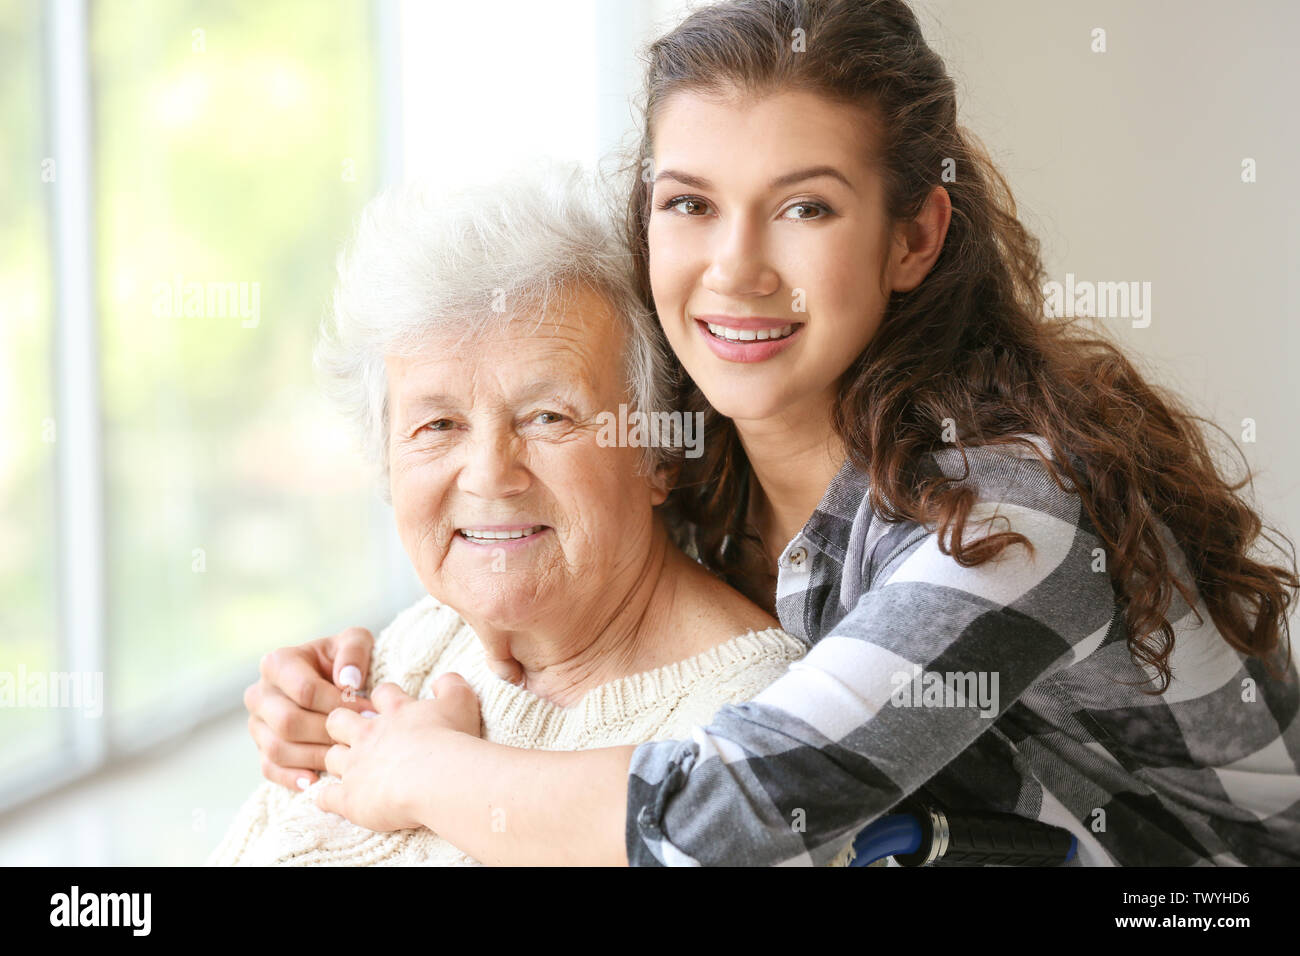 Senior woman with her granddaughter in nursing home - Stock Image